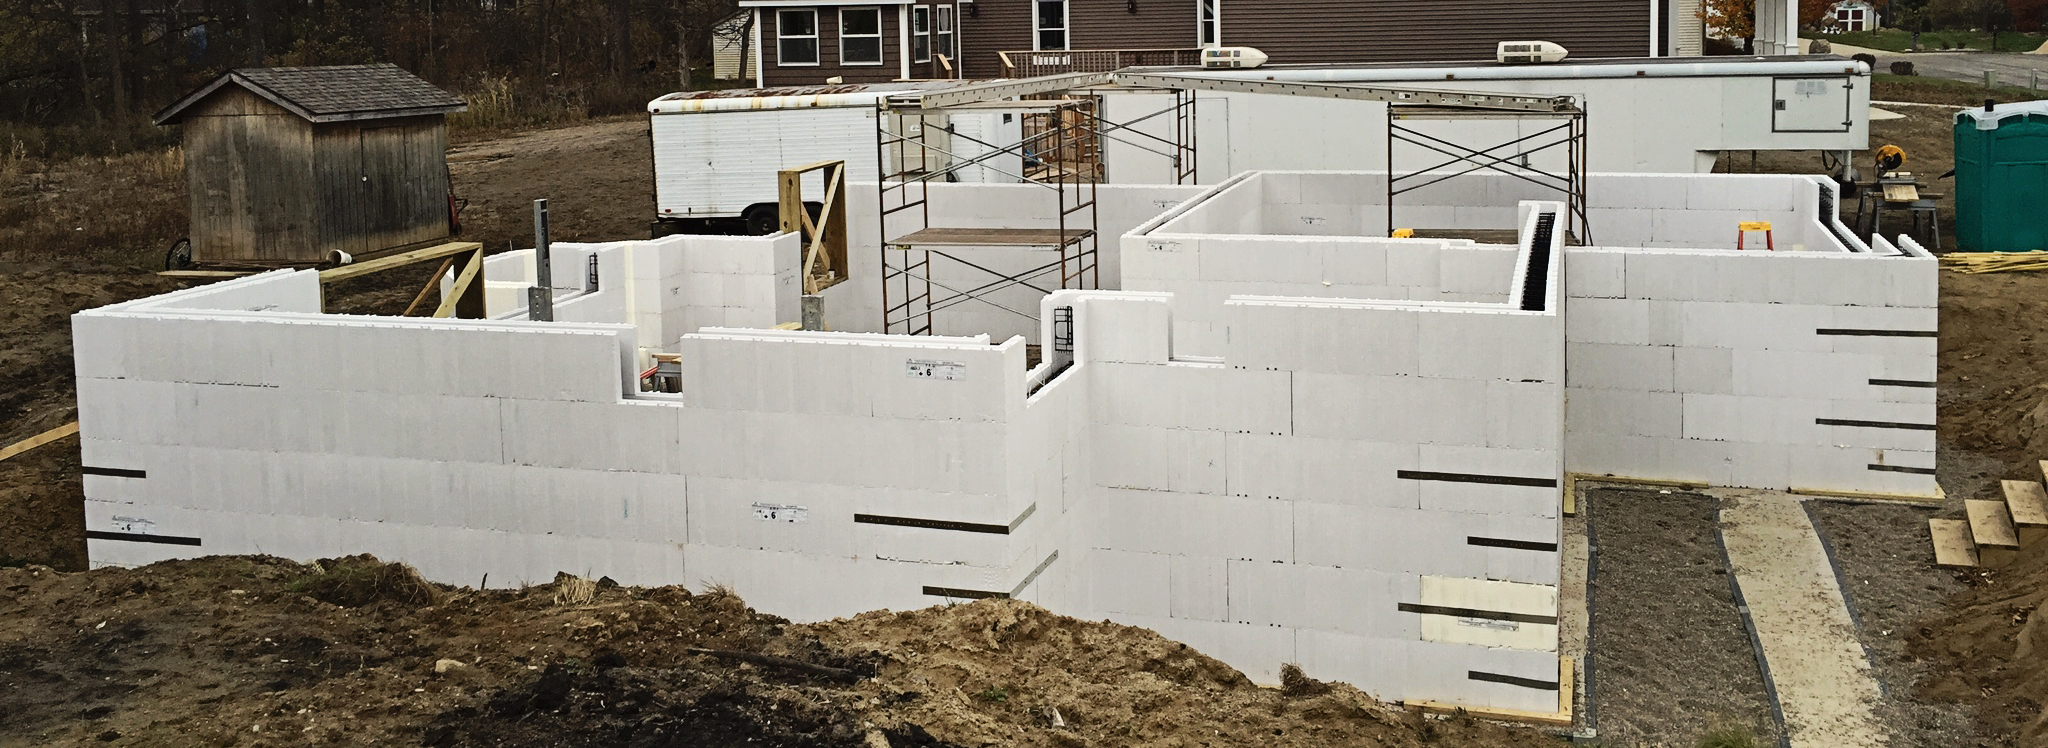 Advantage icf system plasti fab usa for Insulated concrete forms pricing